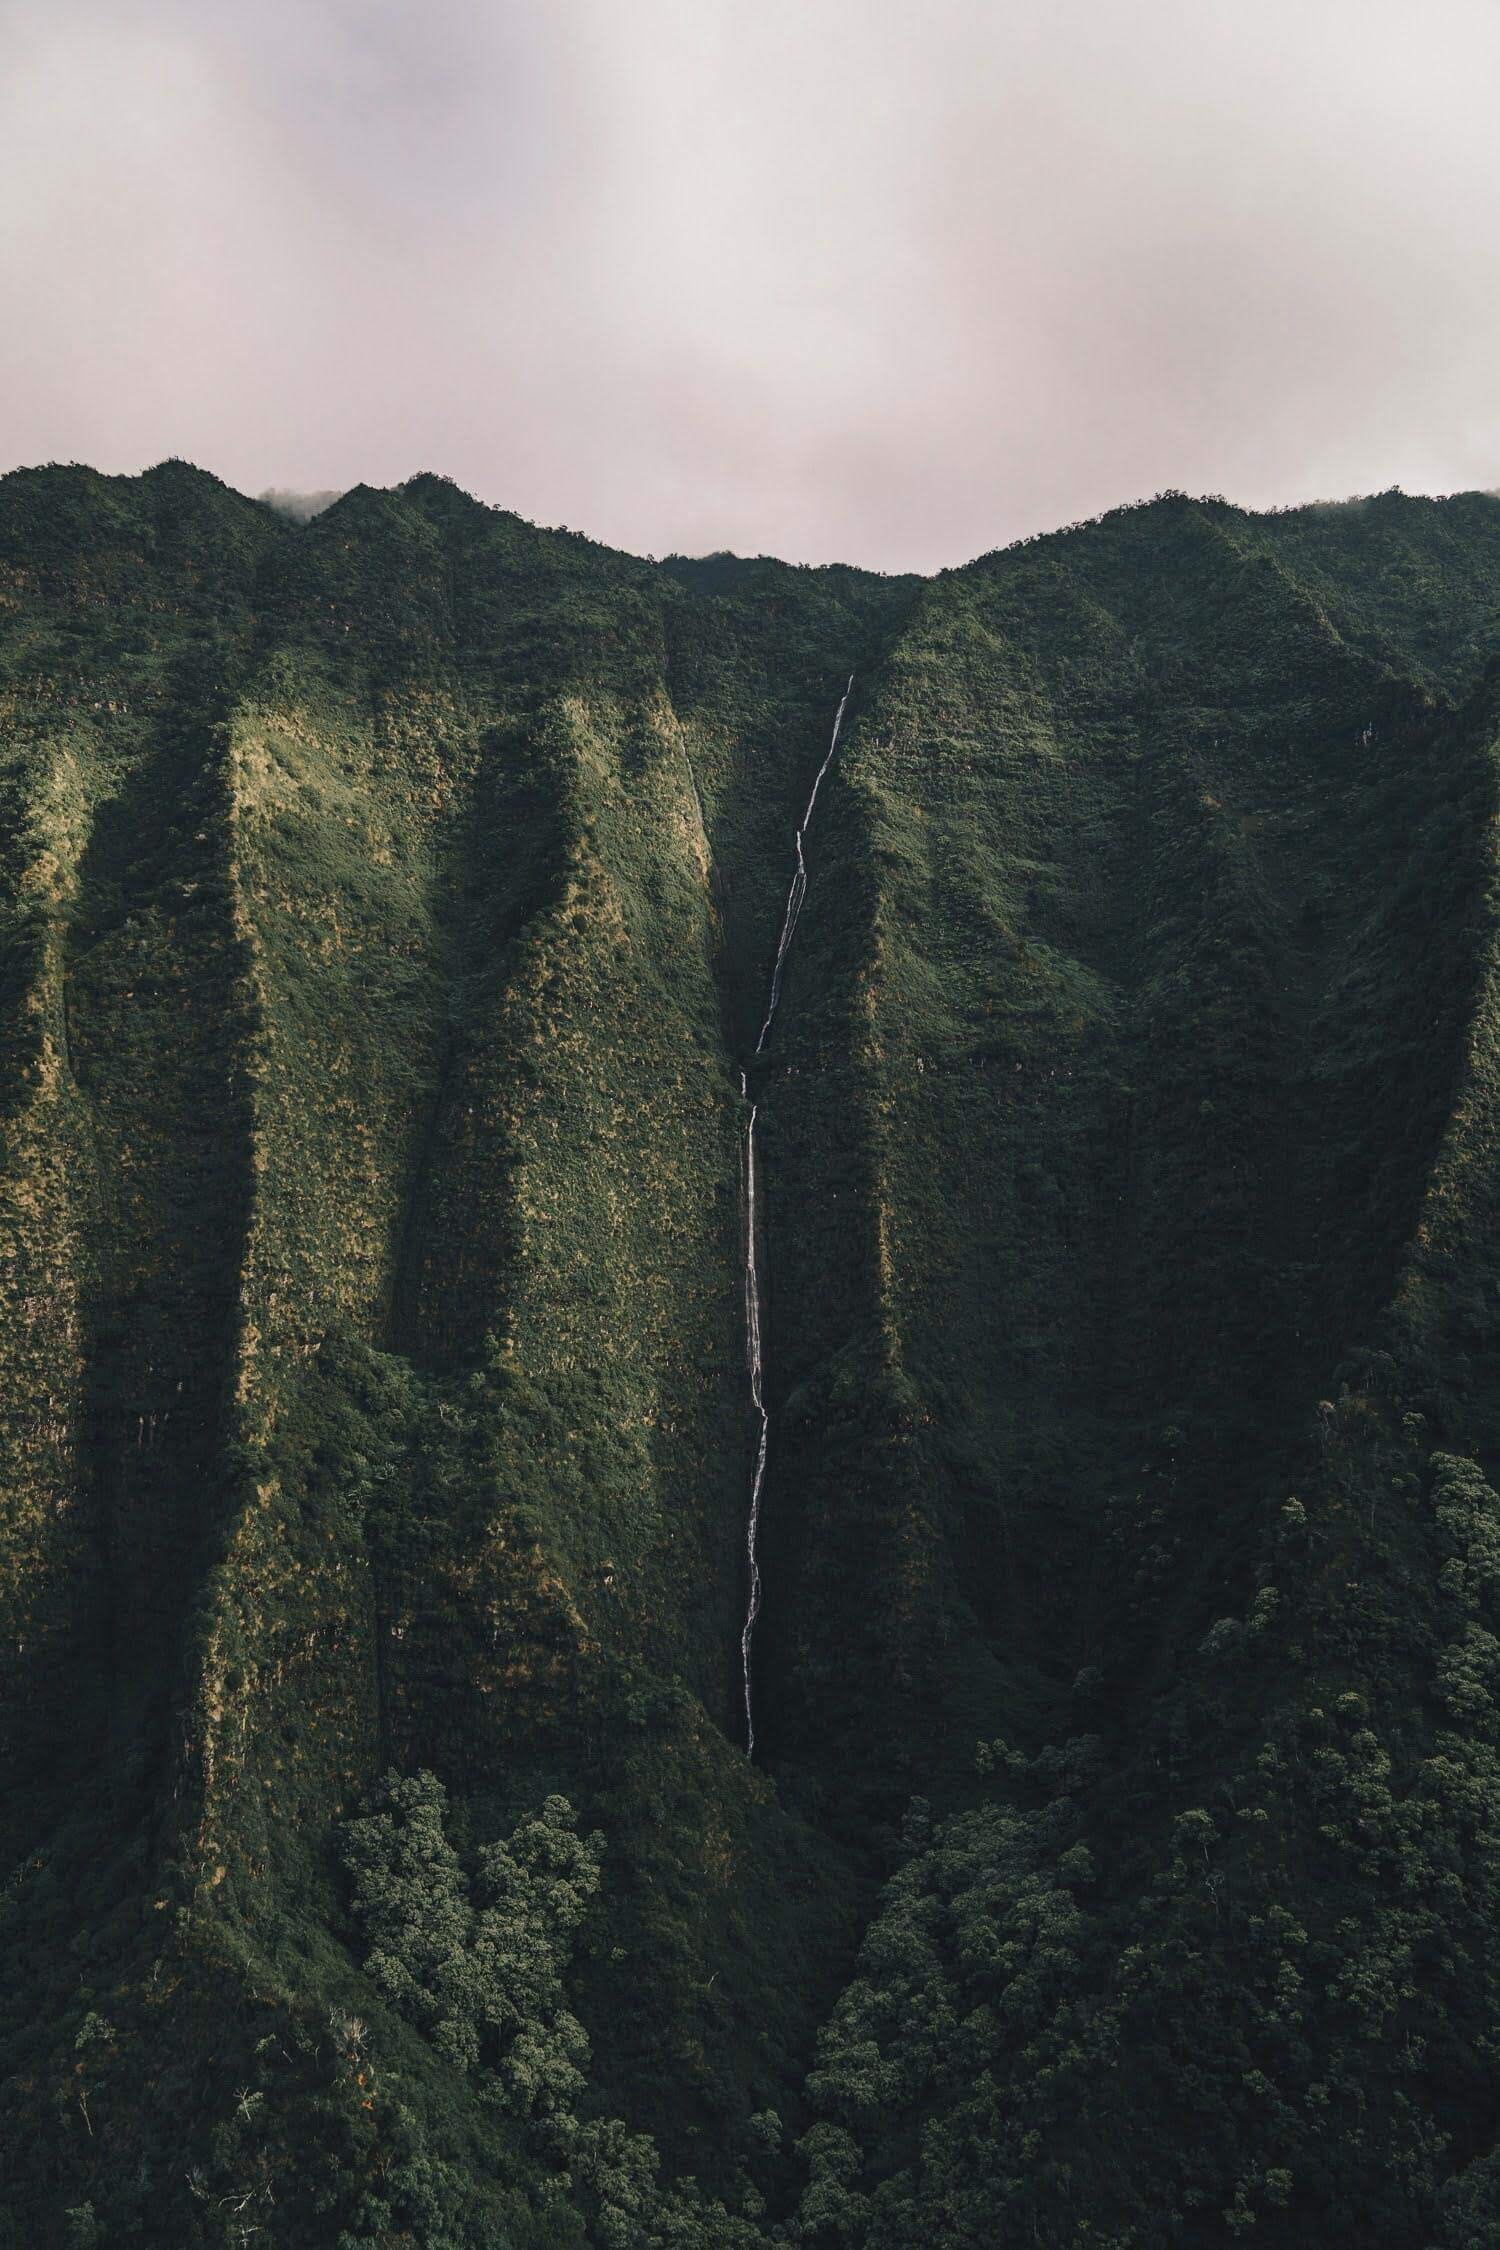 Waterfall in Kauai, US. Photo by Guille Pozzi on Unsplash